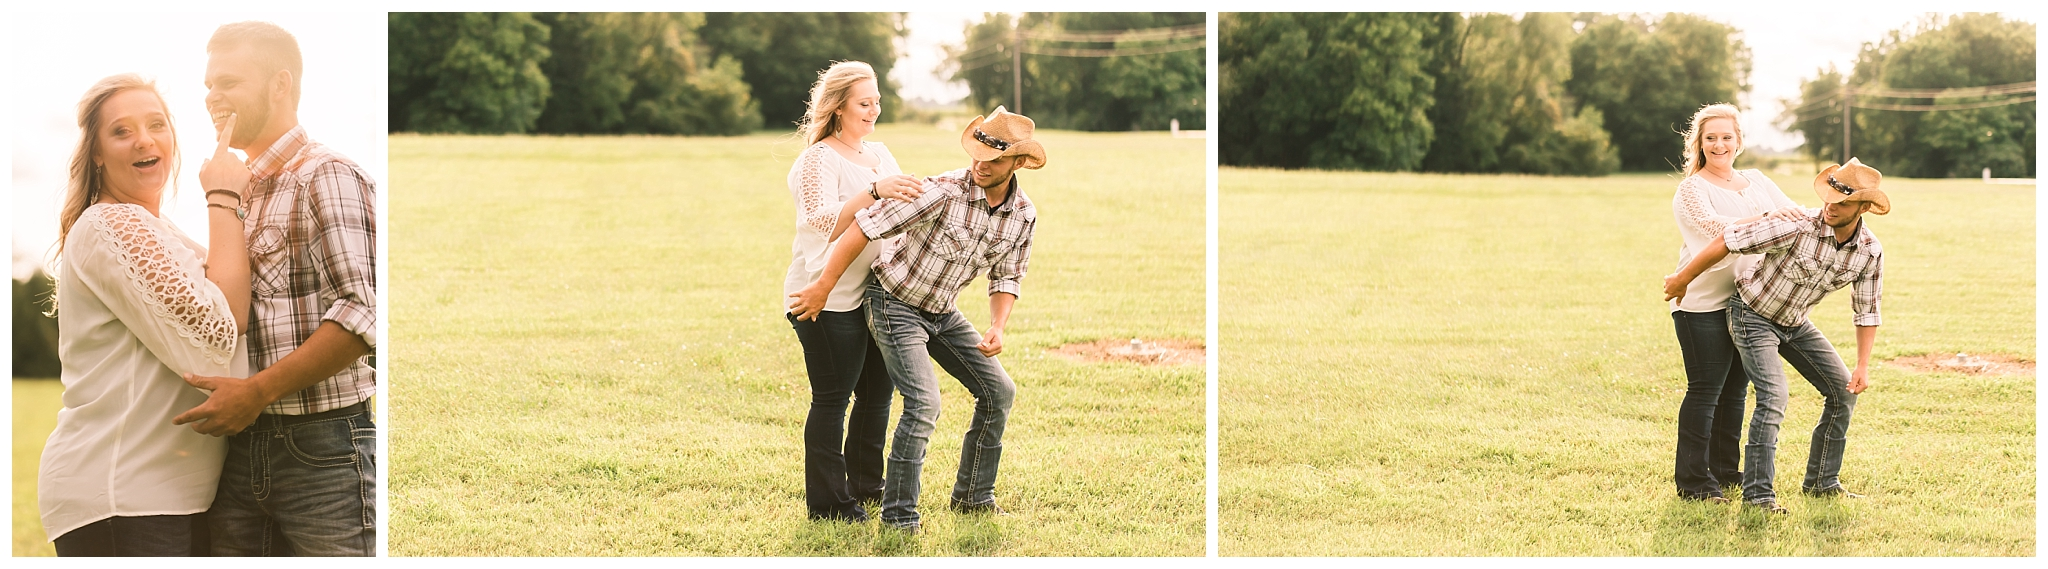 lafayette indiana sunset engagement photography county fair adventure new adventure productions_0678.jpg